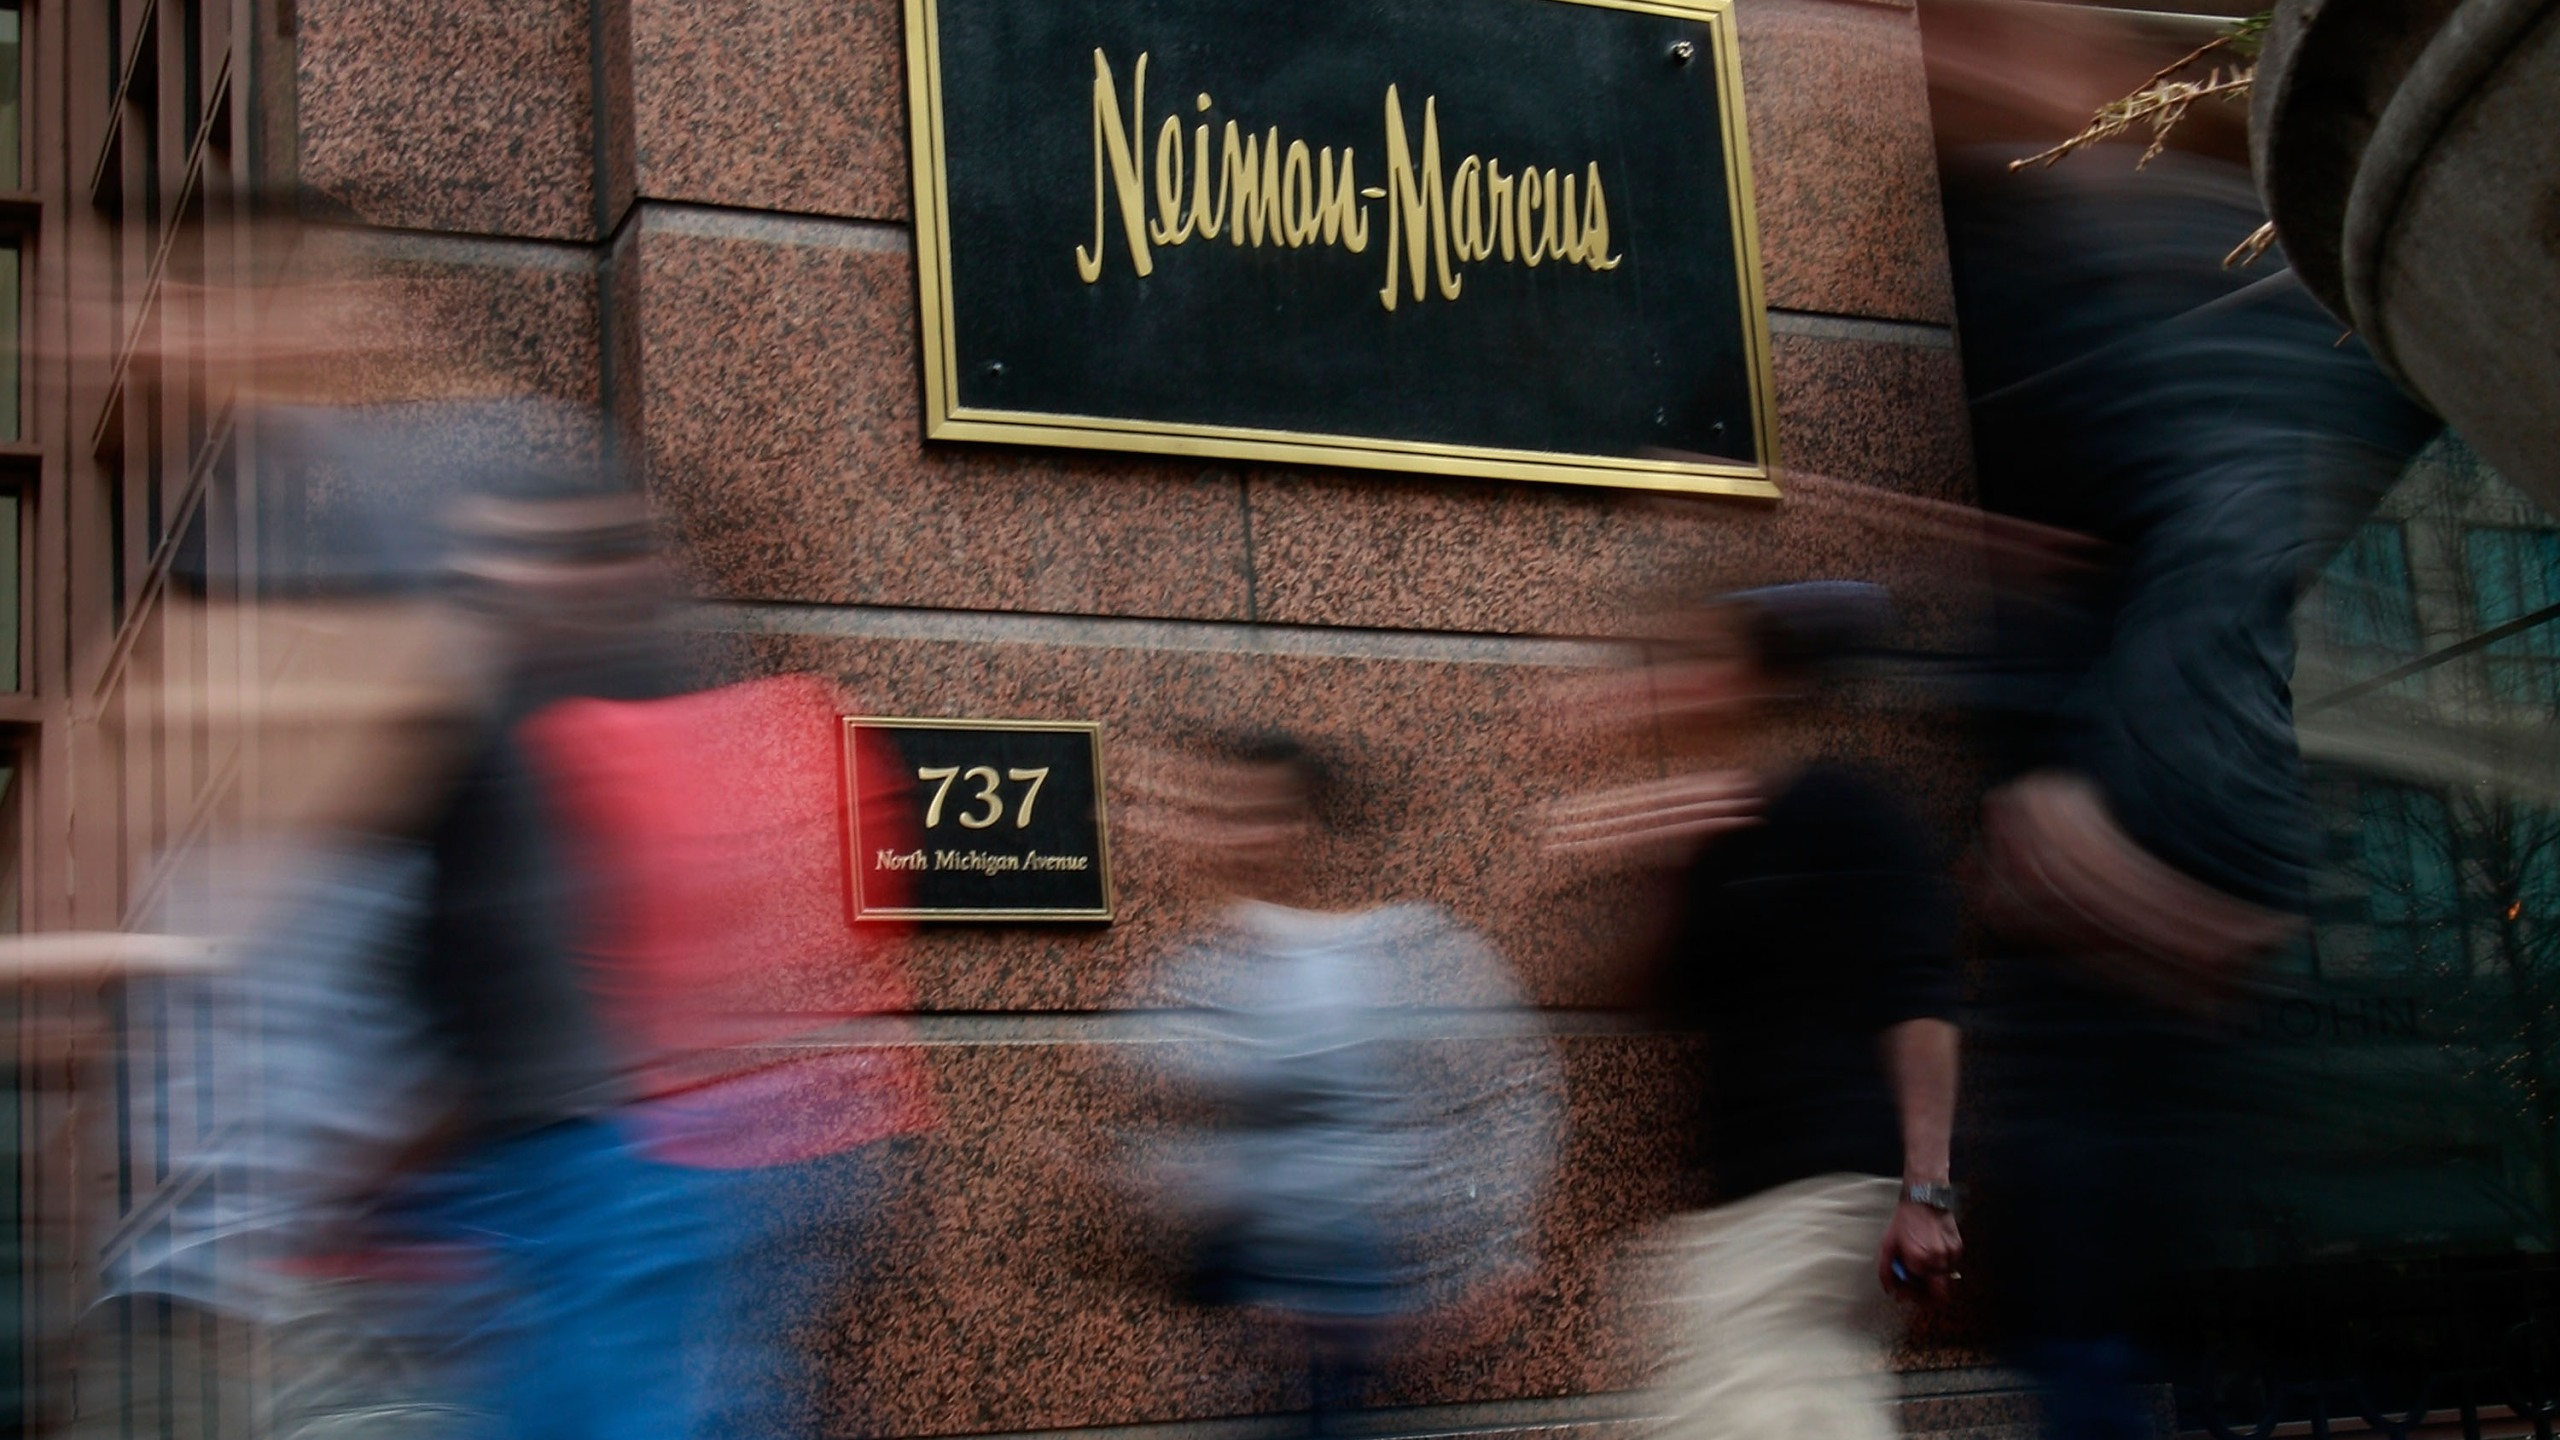 Pedestrians walk past a Neiman Marcus store on the Magnificent Mile March 5, 2009 in Chicago, Illinois. (Scott Olson/Getty Images)